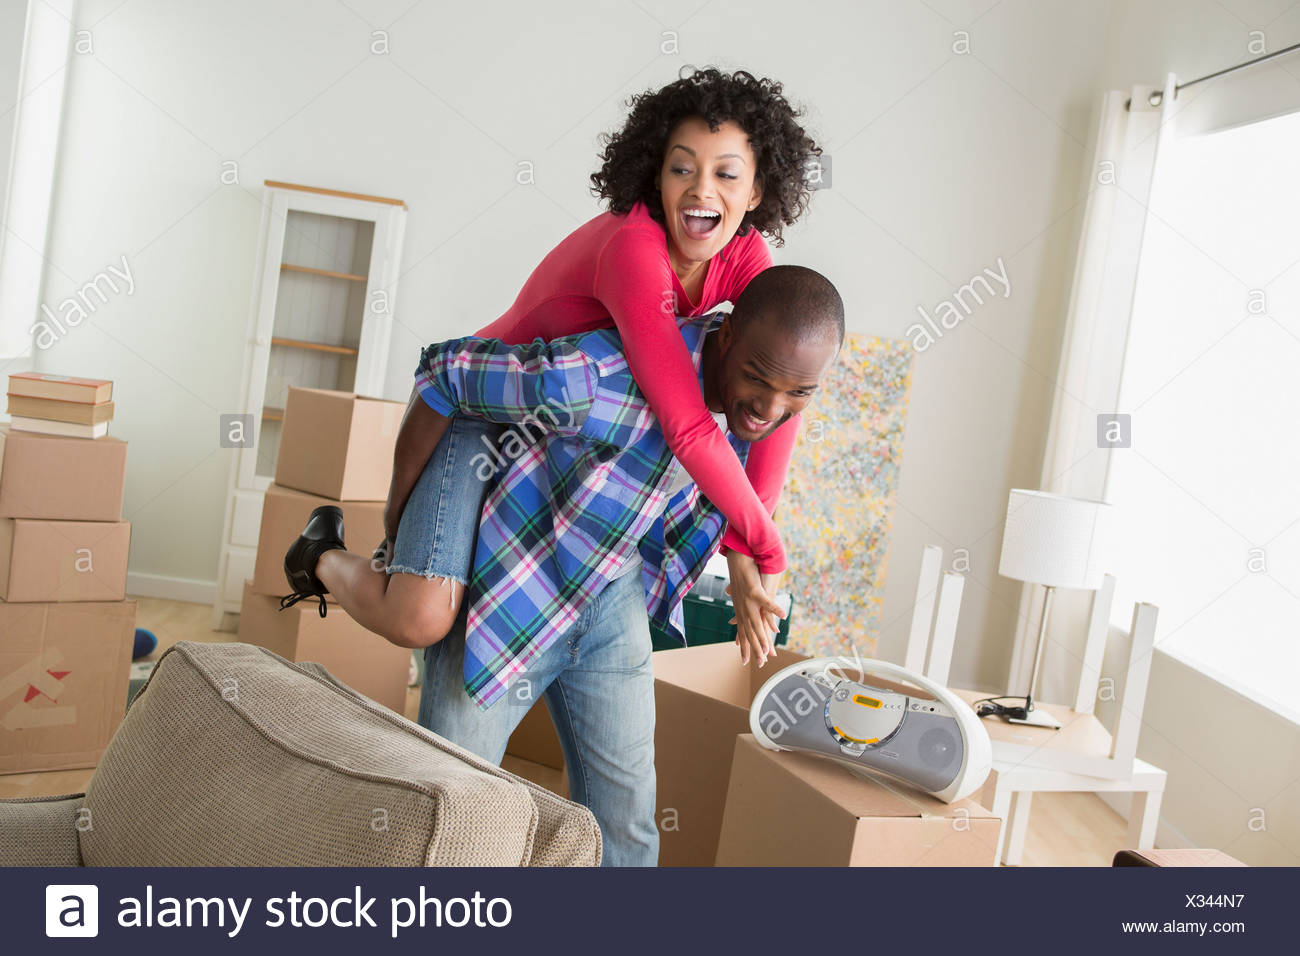 Mid adult couple in new home, man giving woman piggyback - Stock Image